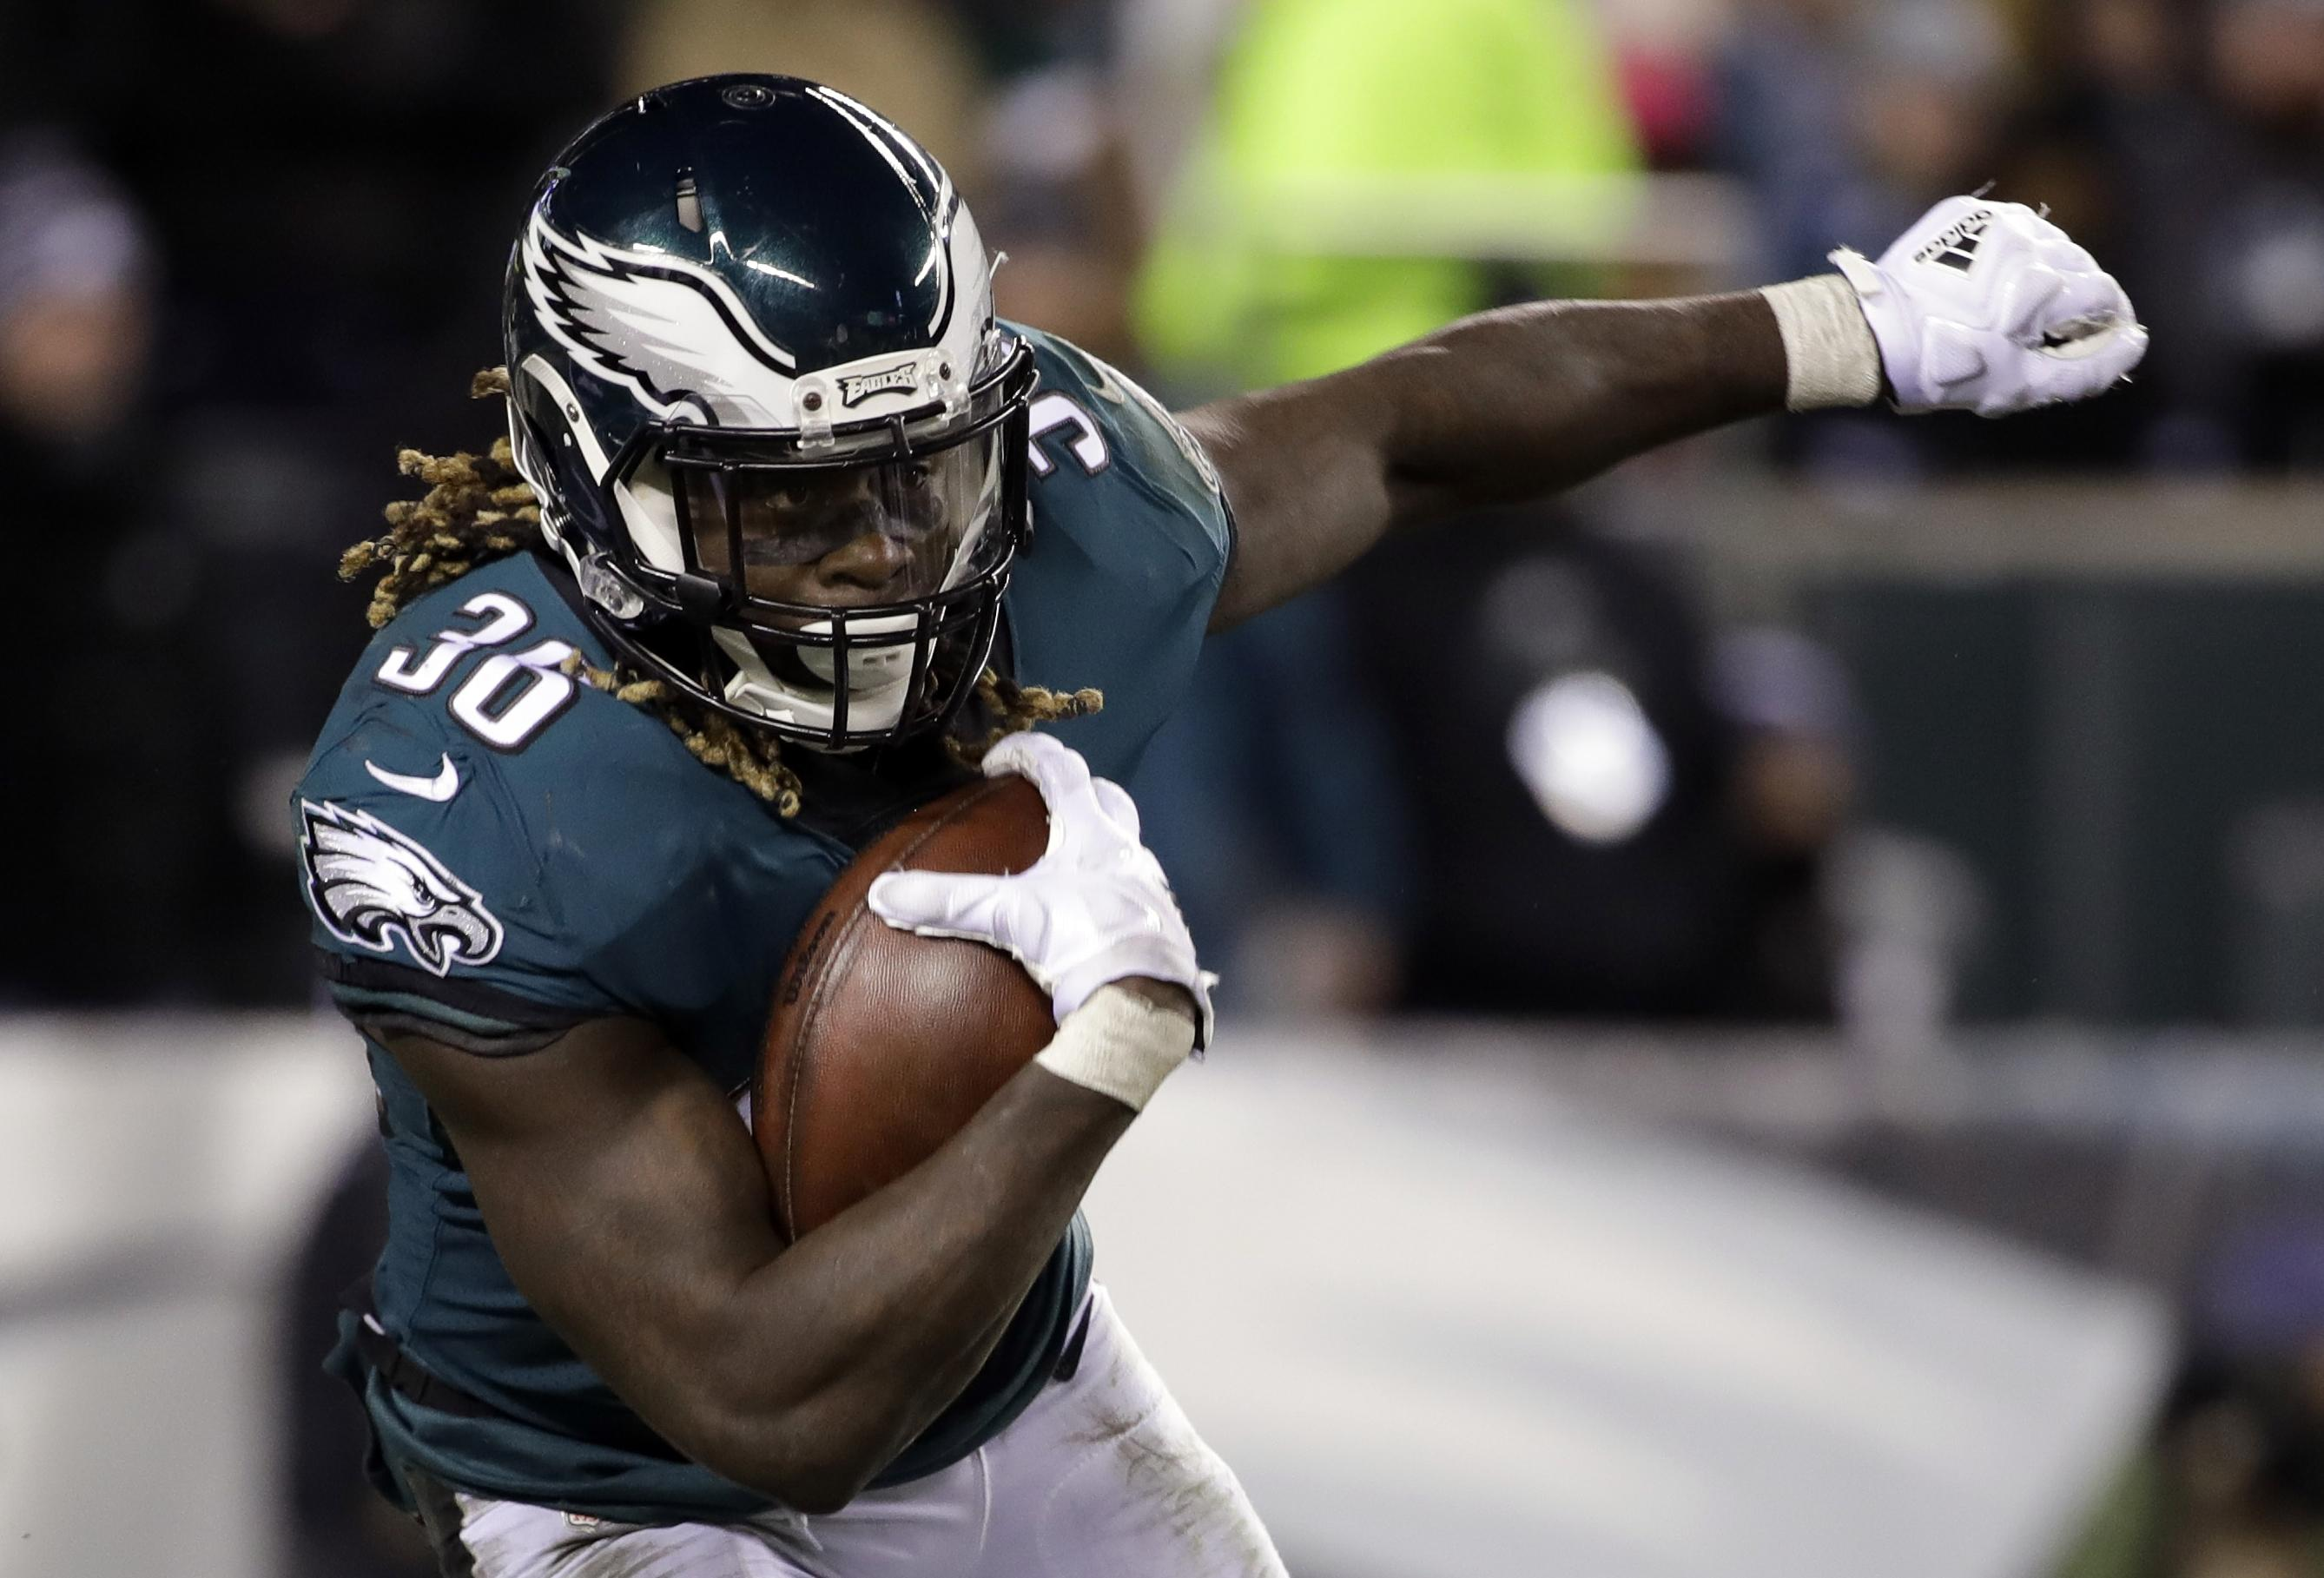 Philadelphia Eagles star Ajayi refutes all claims made in the suit, insisting no parties were held or damage caused